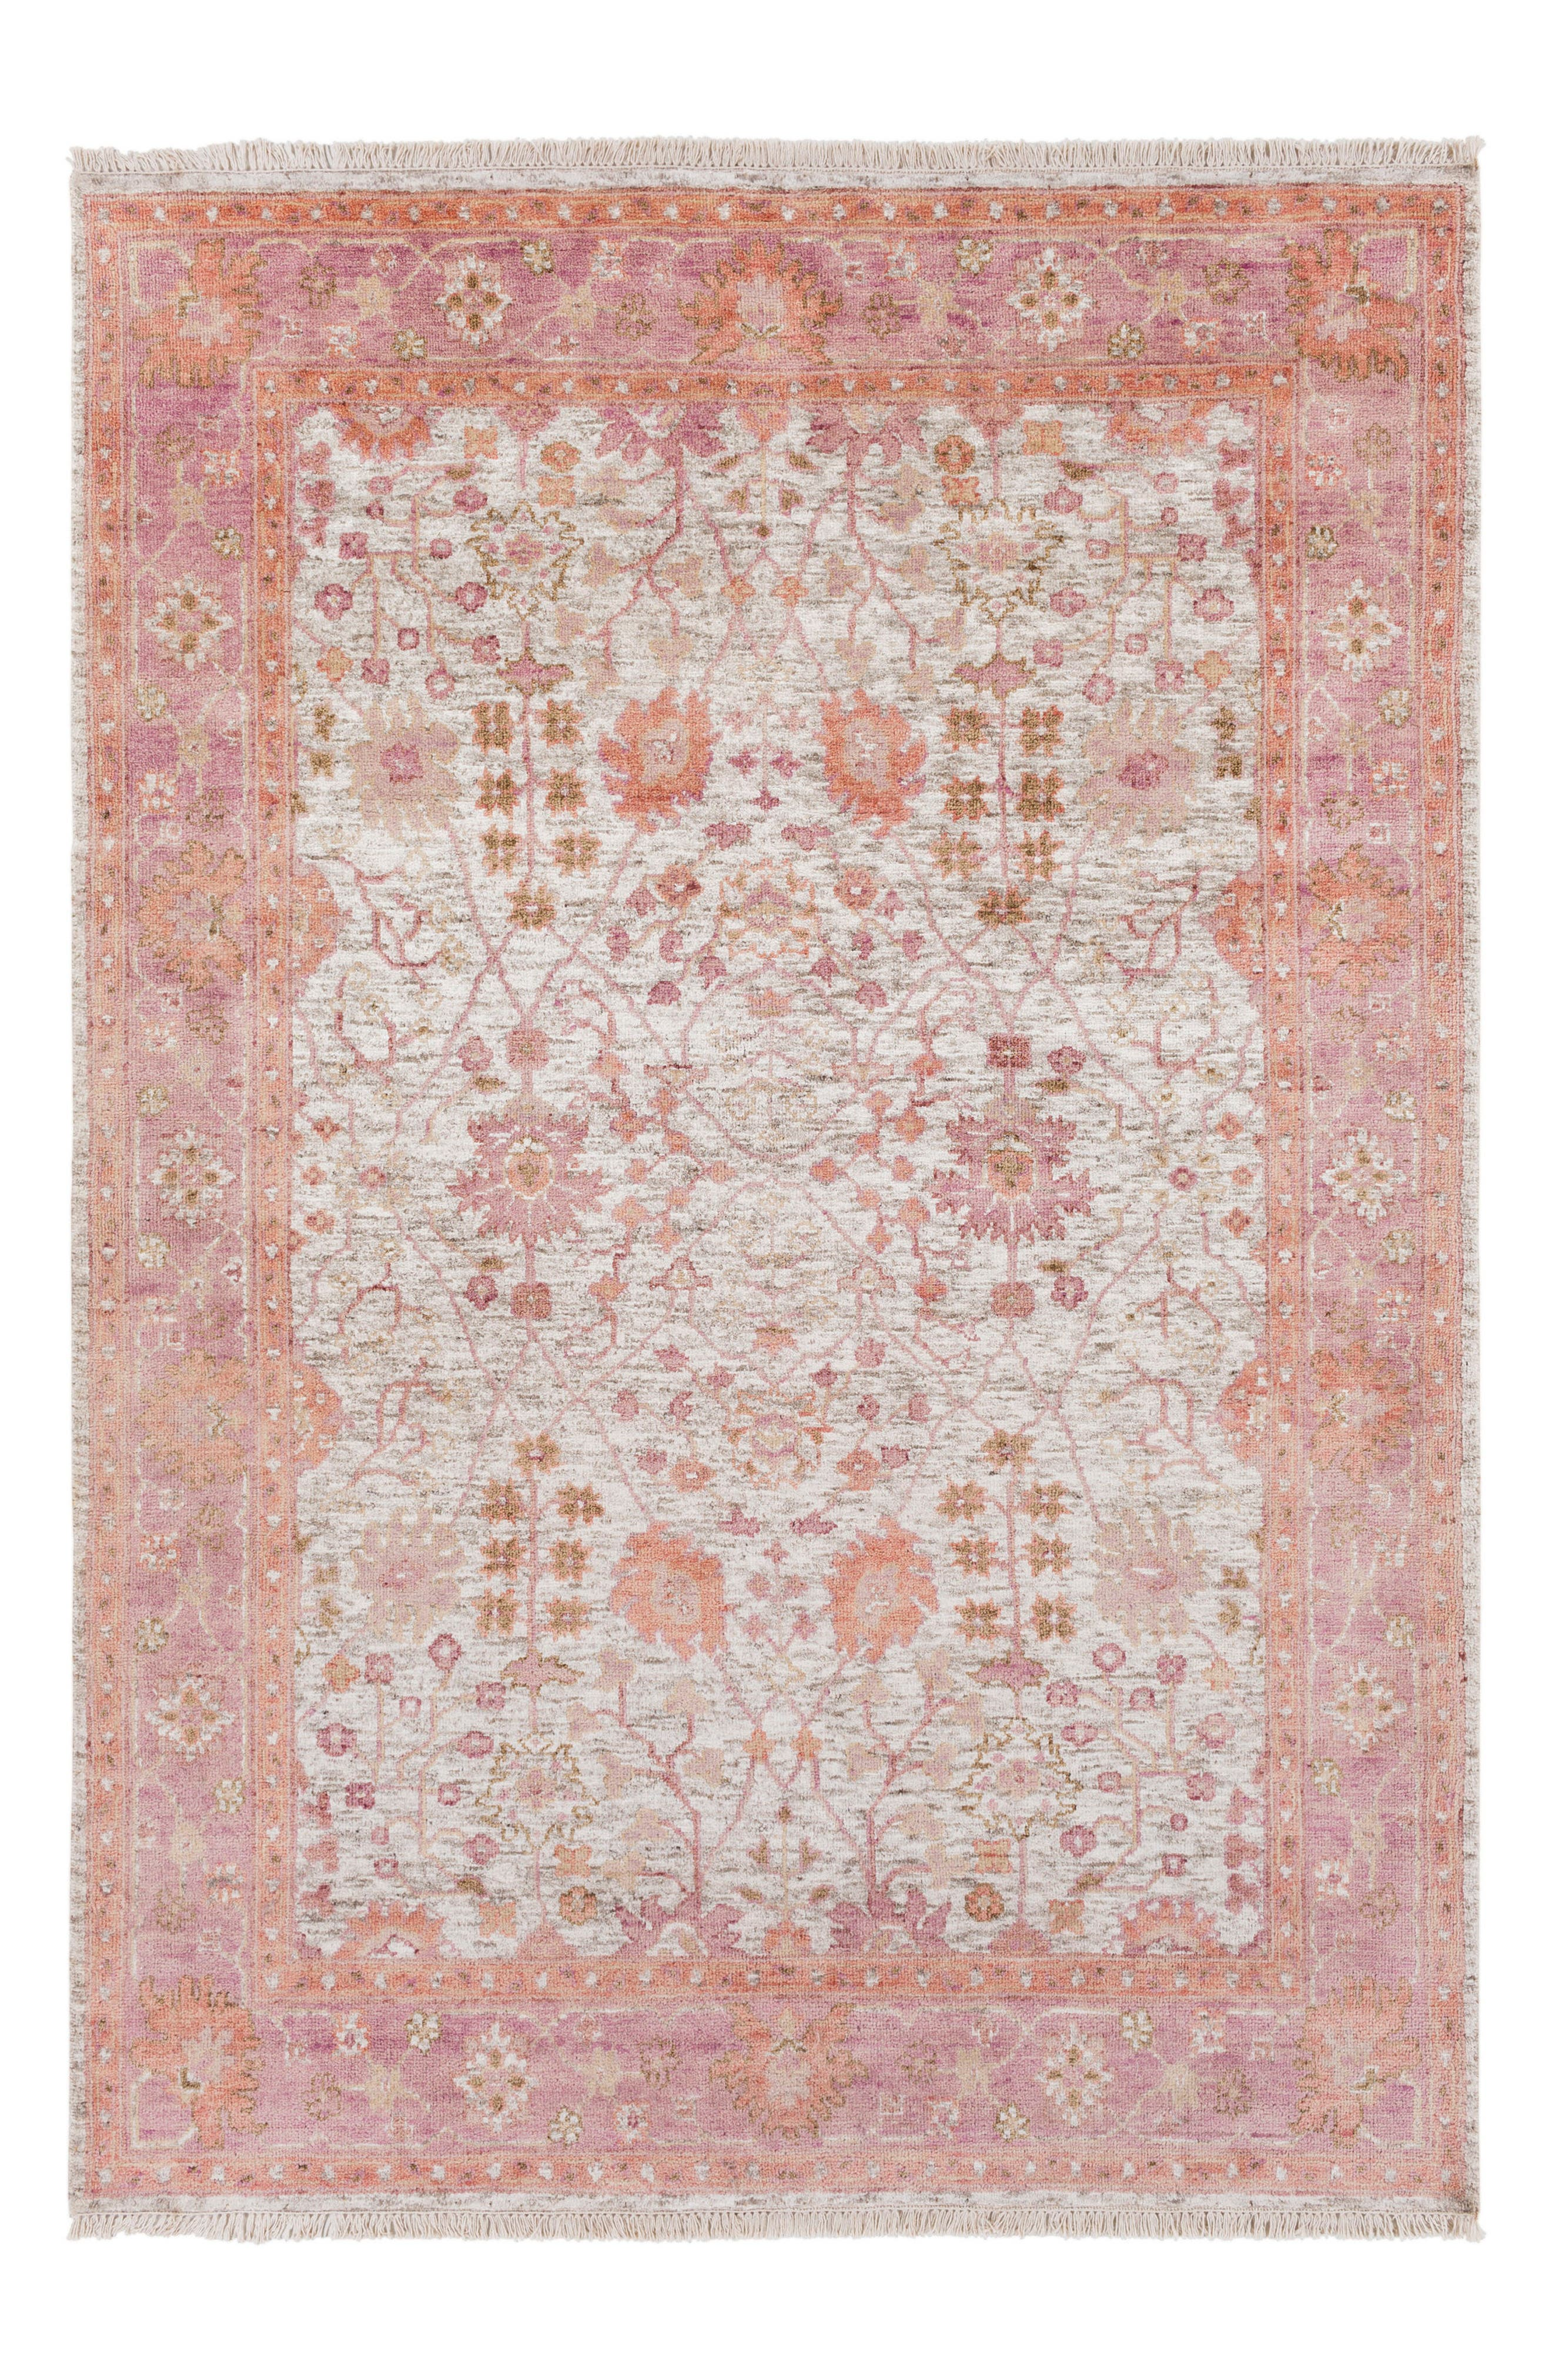 Maeva Classic Hand Knotted Rug,                         Main,                         color, Peach/ Pink